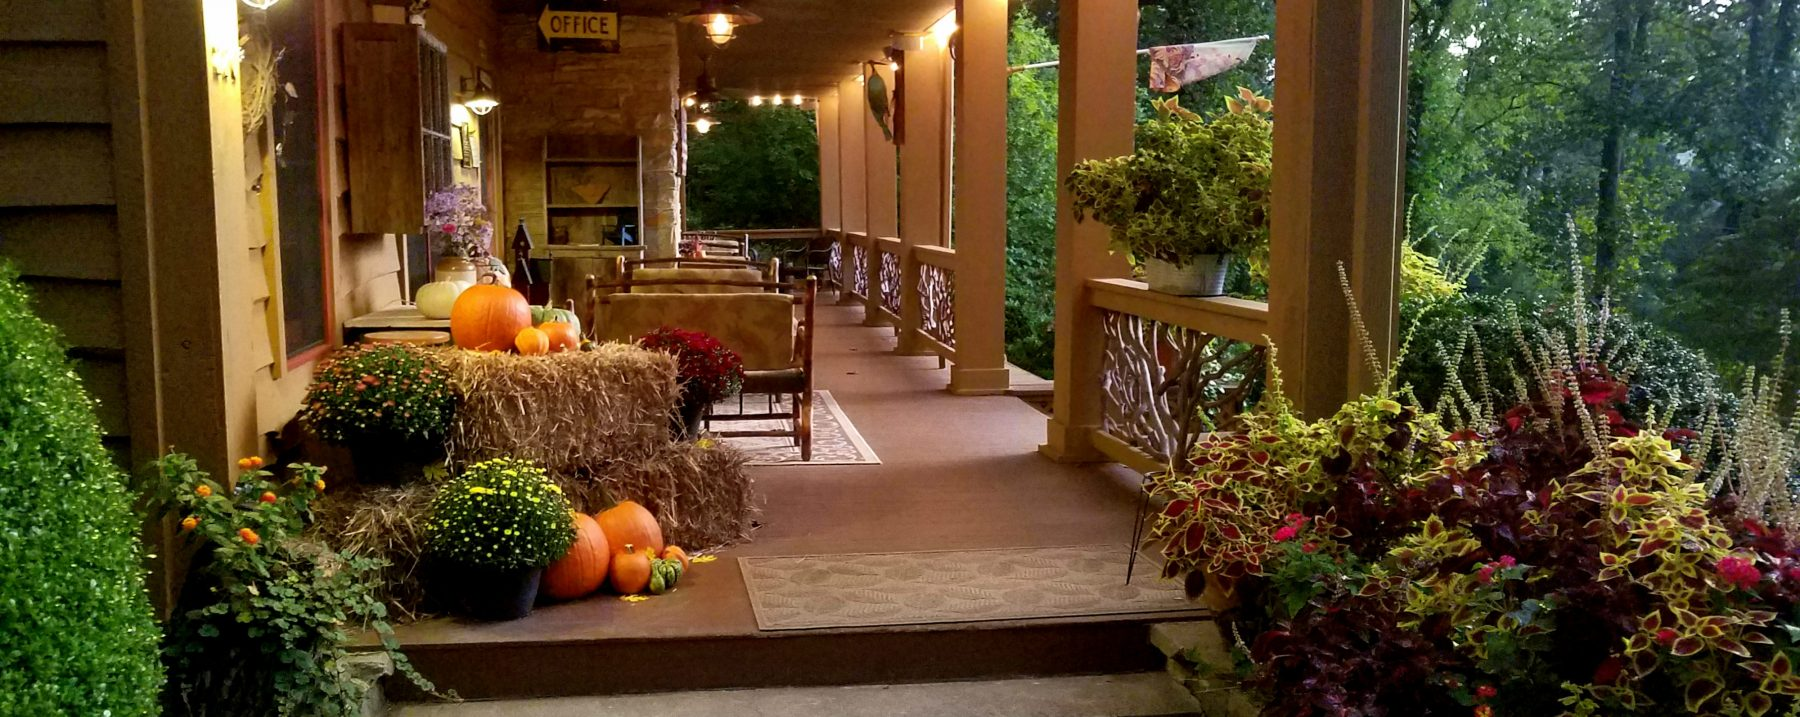 View of Beechwood Inn Front Porch in Autumn at Dusk